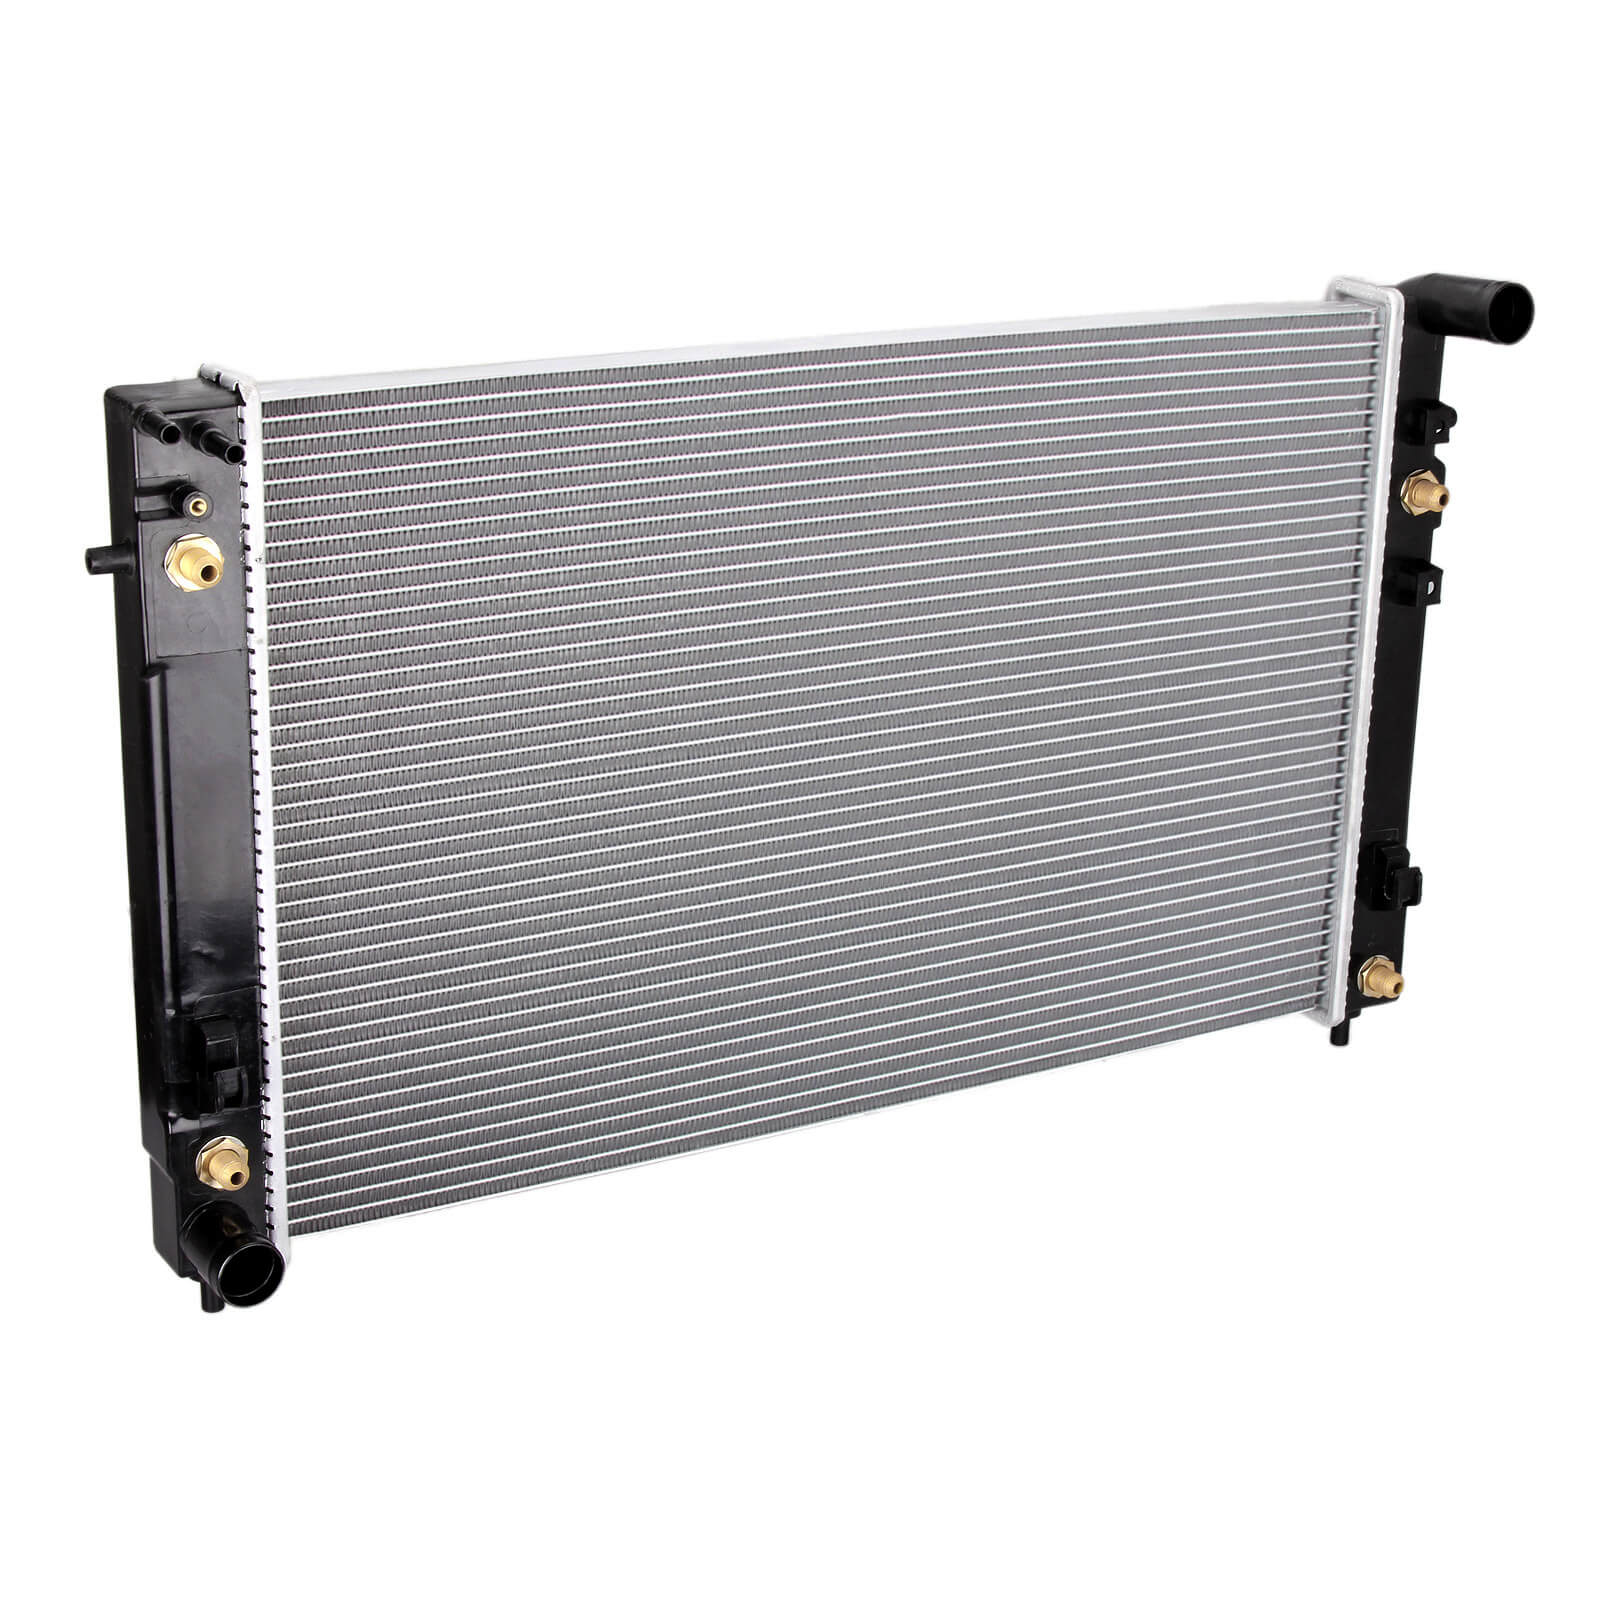 Radiator Holden Commodore VT VU VX HSV V8 GEN3 LS1 5.7L 1997-2002 Auto/Manual